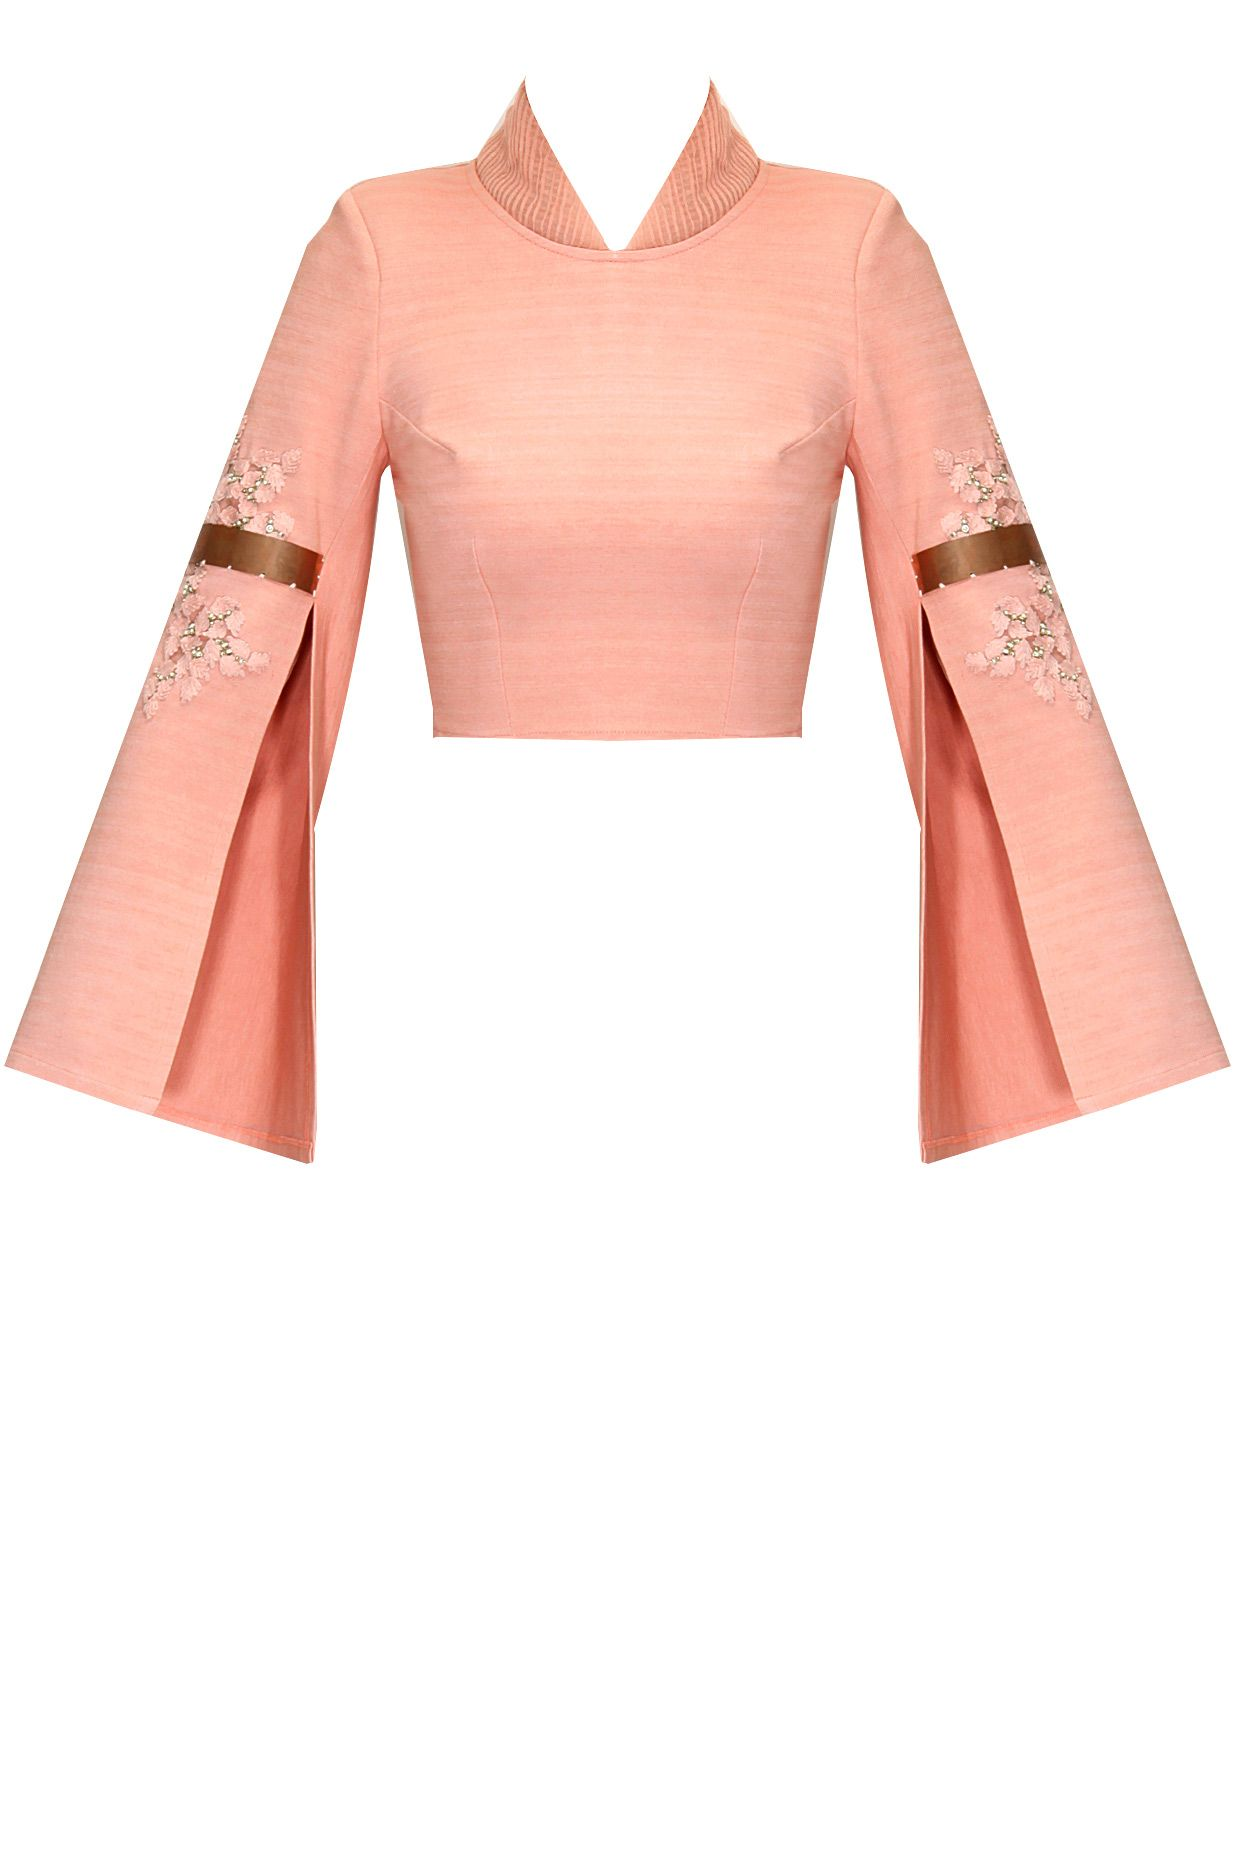 575e0e1891 Pink embroidered double sleeves crop top available only at Pernia's ...